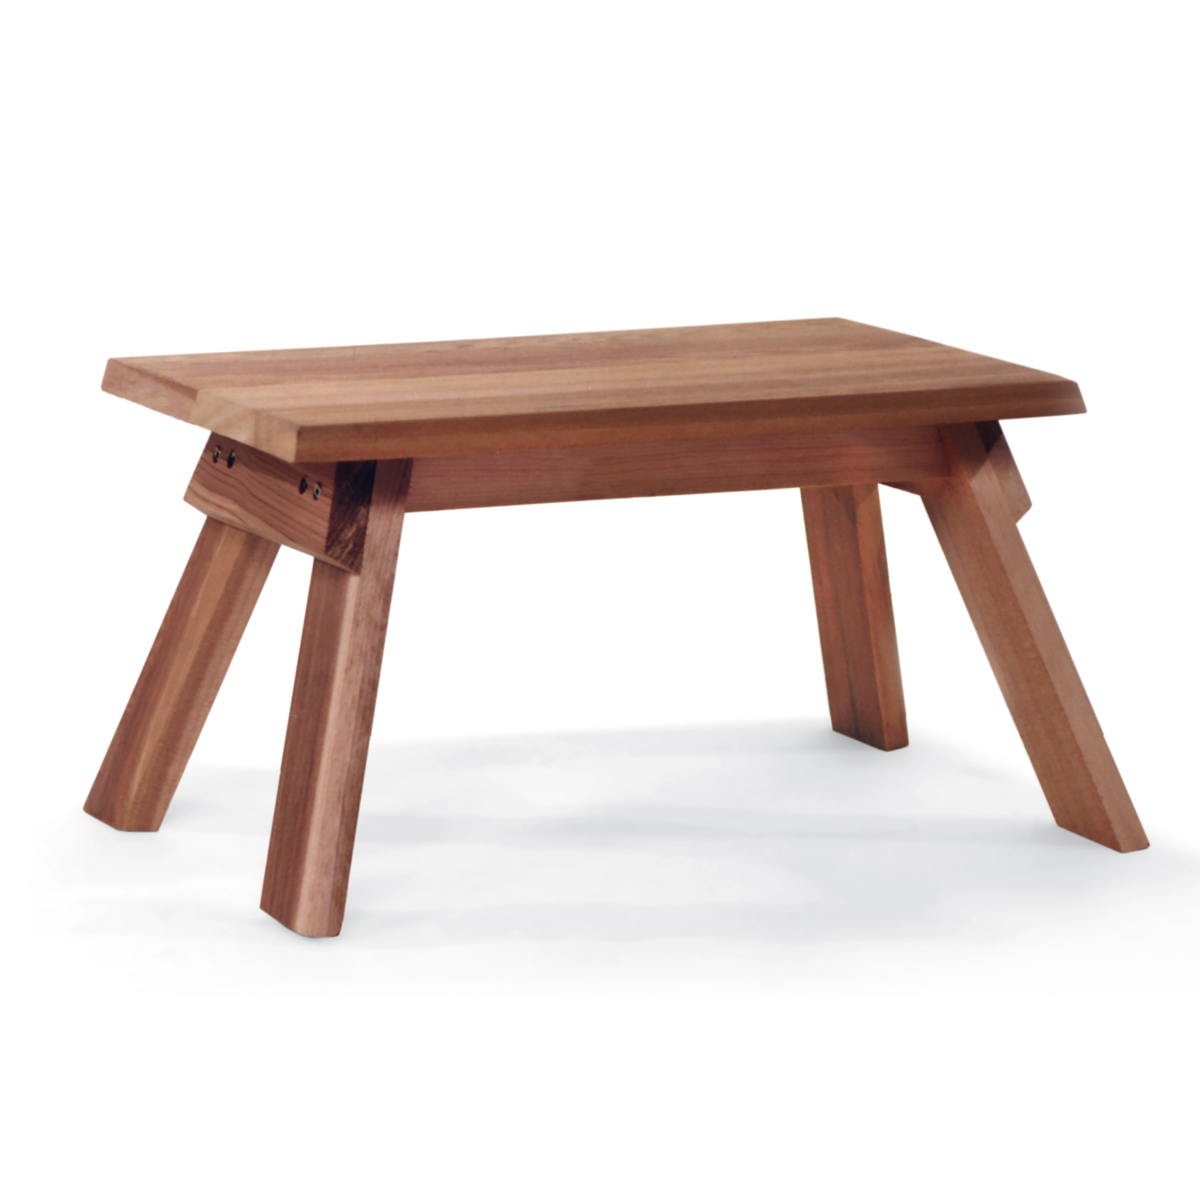 All Things Cedar Patio Furniture Adirondack Chairs Porch Swings Garden Benches Picnic Tables Planters Pergola Arbors